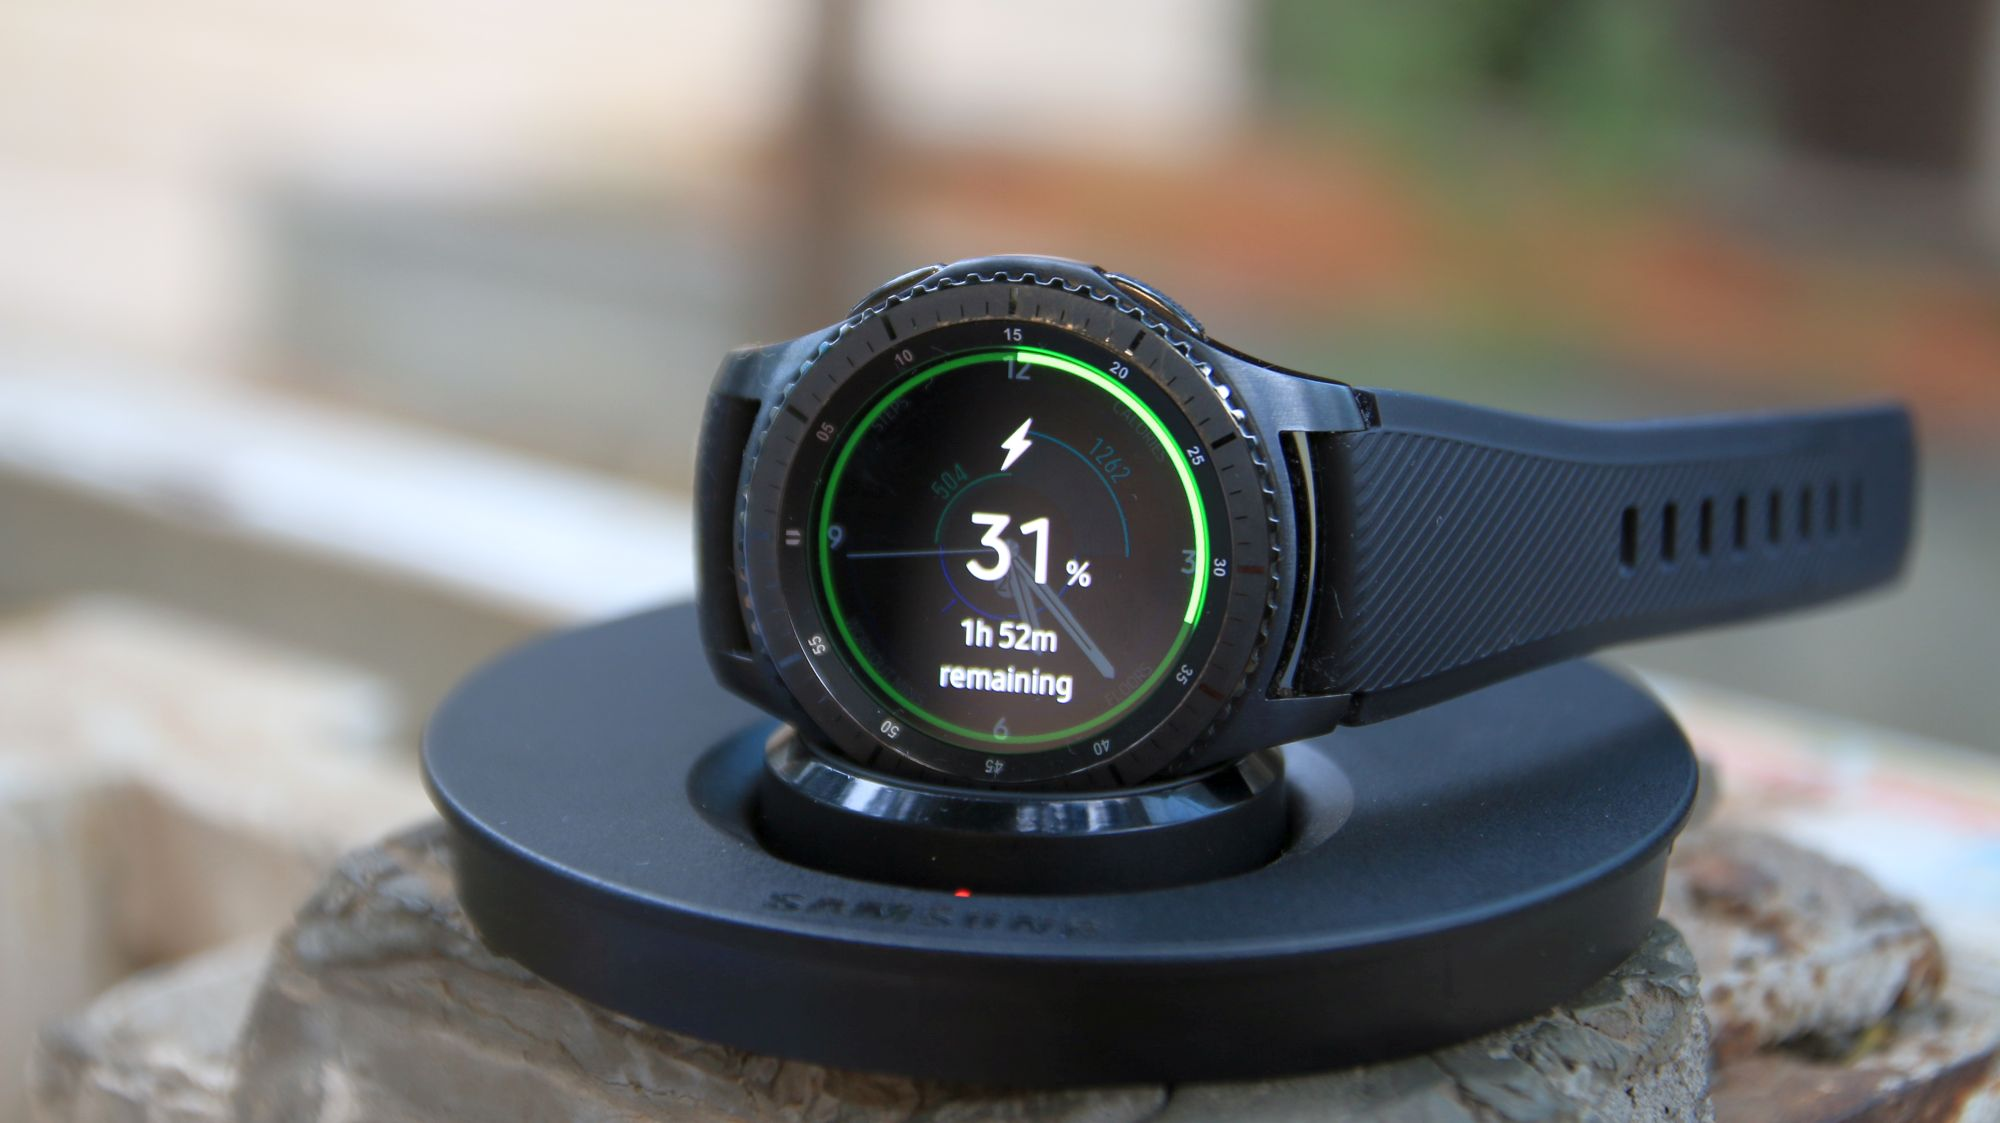 Samsung Gear Fit Is Beautiful Inside And Out Review: Samsung Gear S3 Frontier Review: Outclassing Most